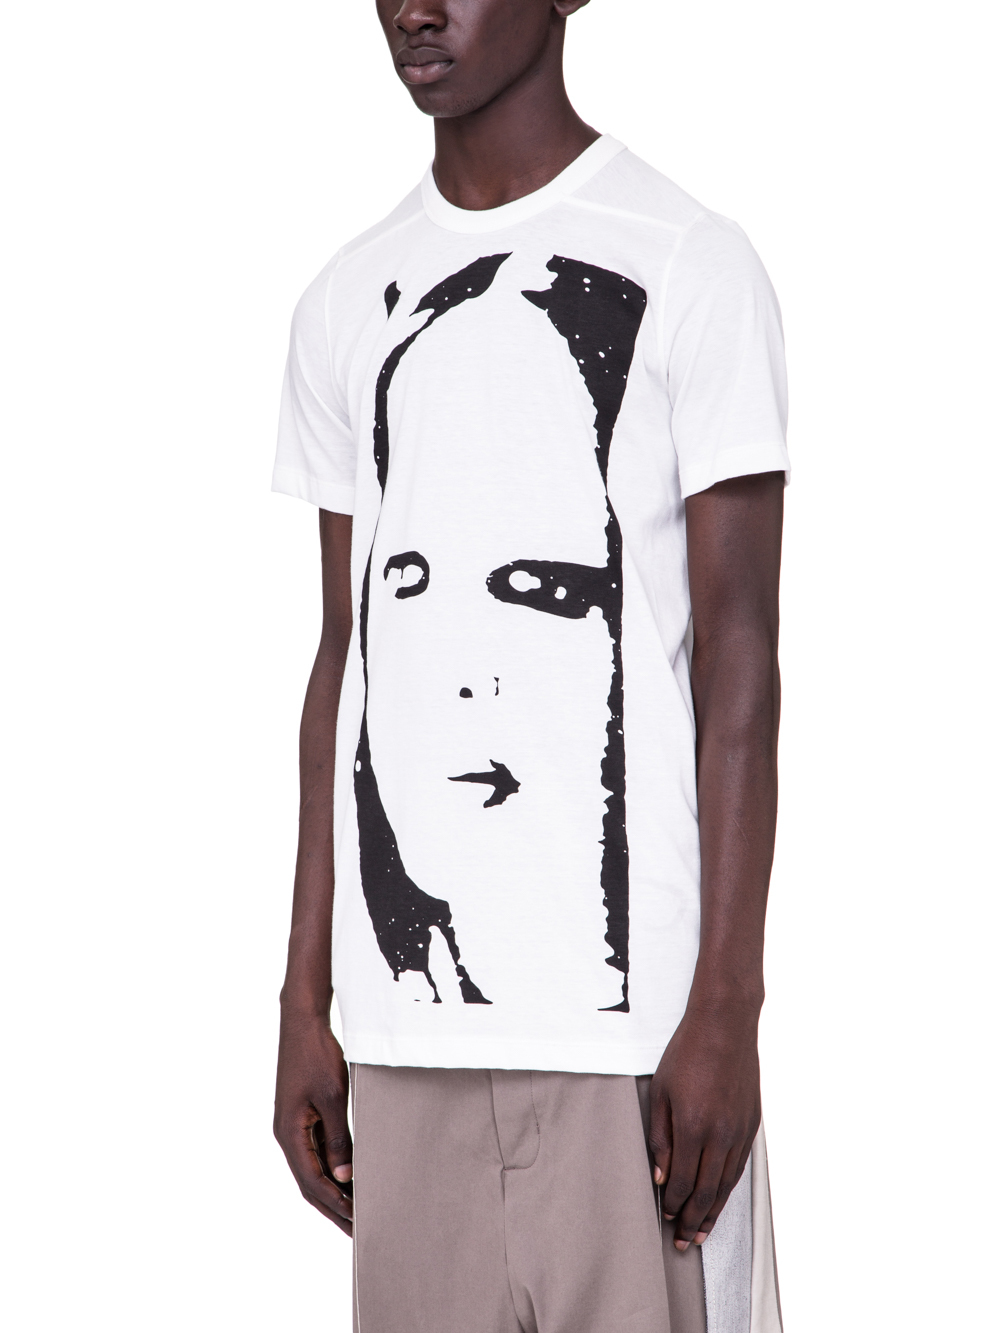 RICK OWENS SS19 BABEL LEVEL TEE WITH KEMBRA PRINT IN MILK WHITE COTTON